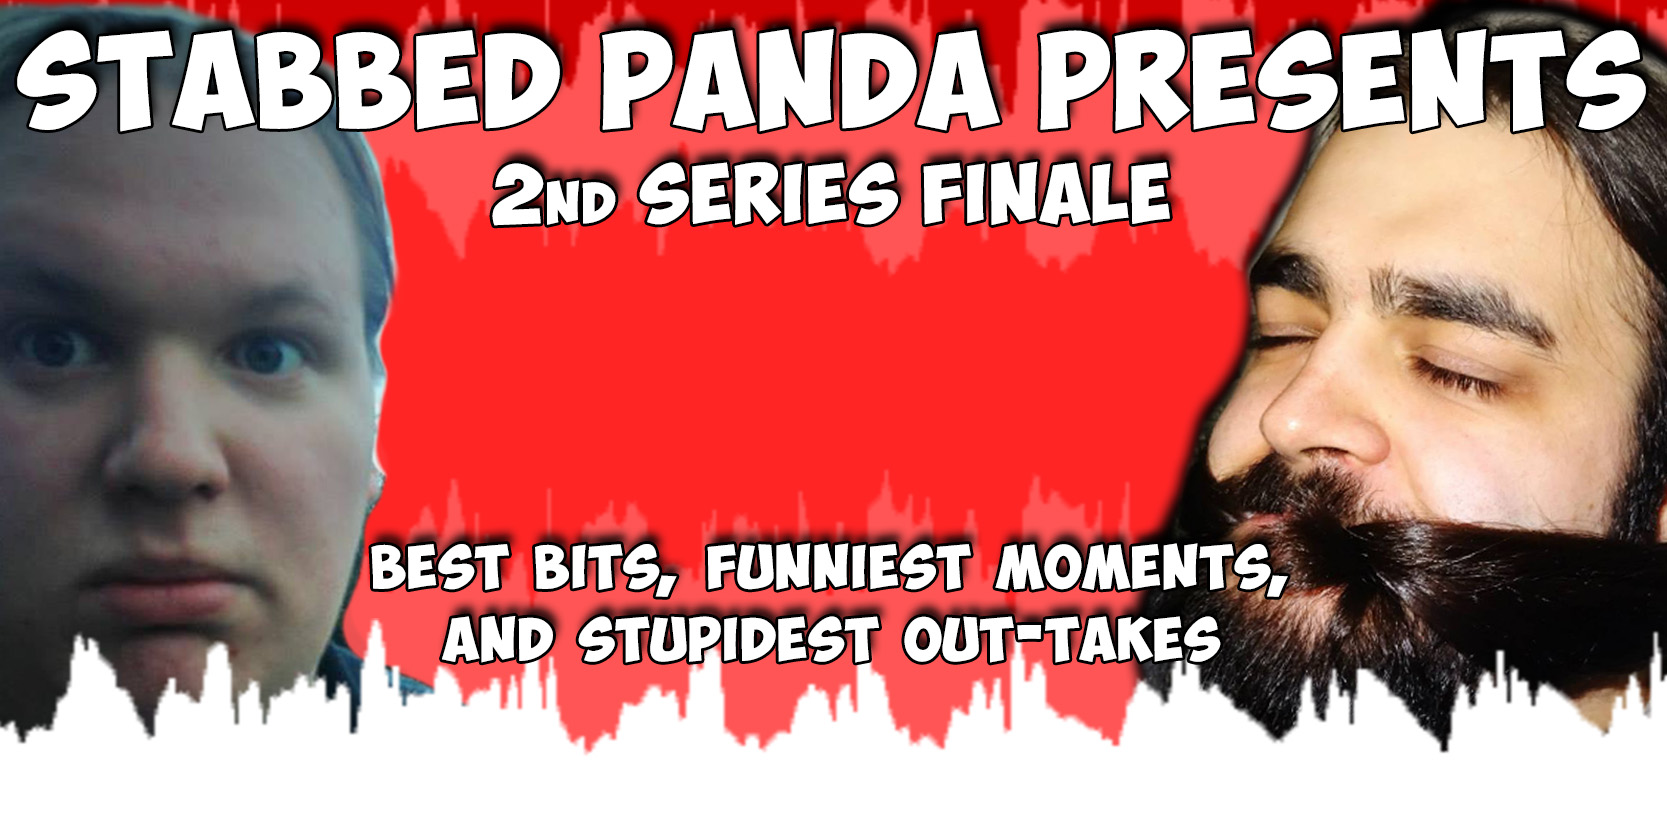 Stabbed Panda Stabbed Panda Presents 2nd Series Finale